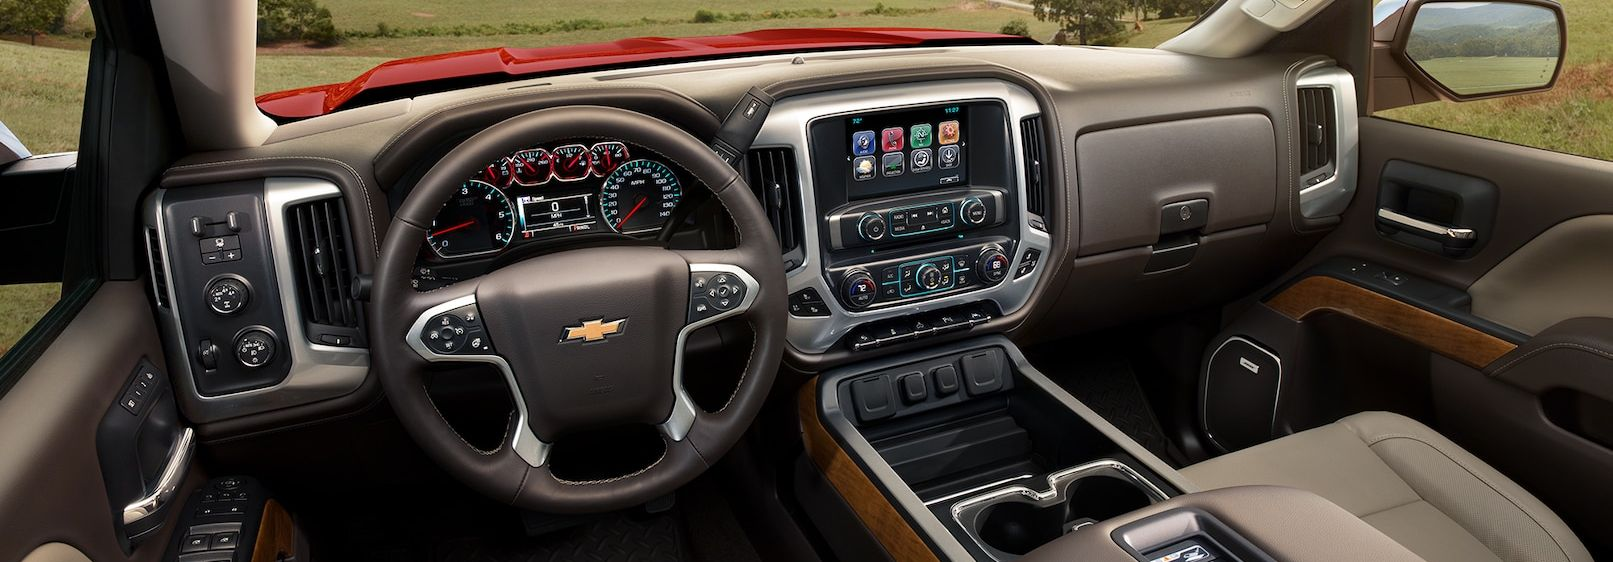 Well-Equipped Cabin of the Silverado 1500